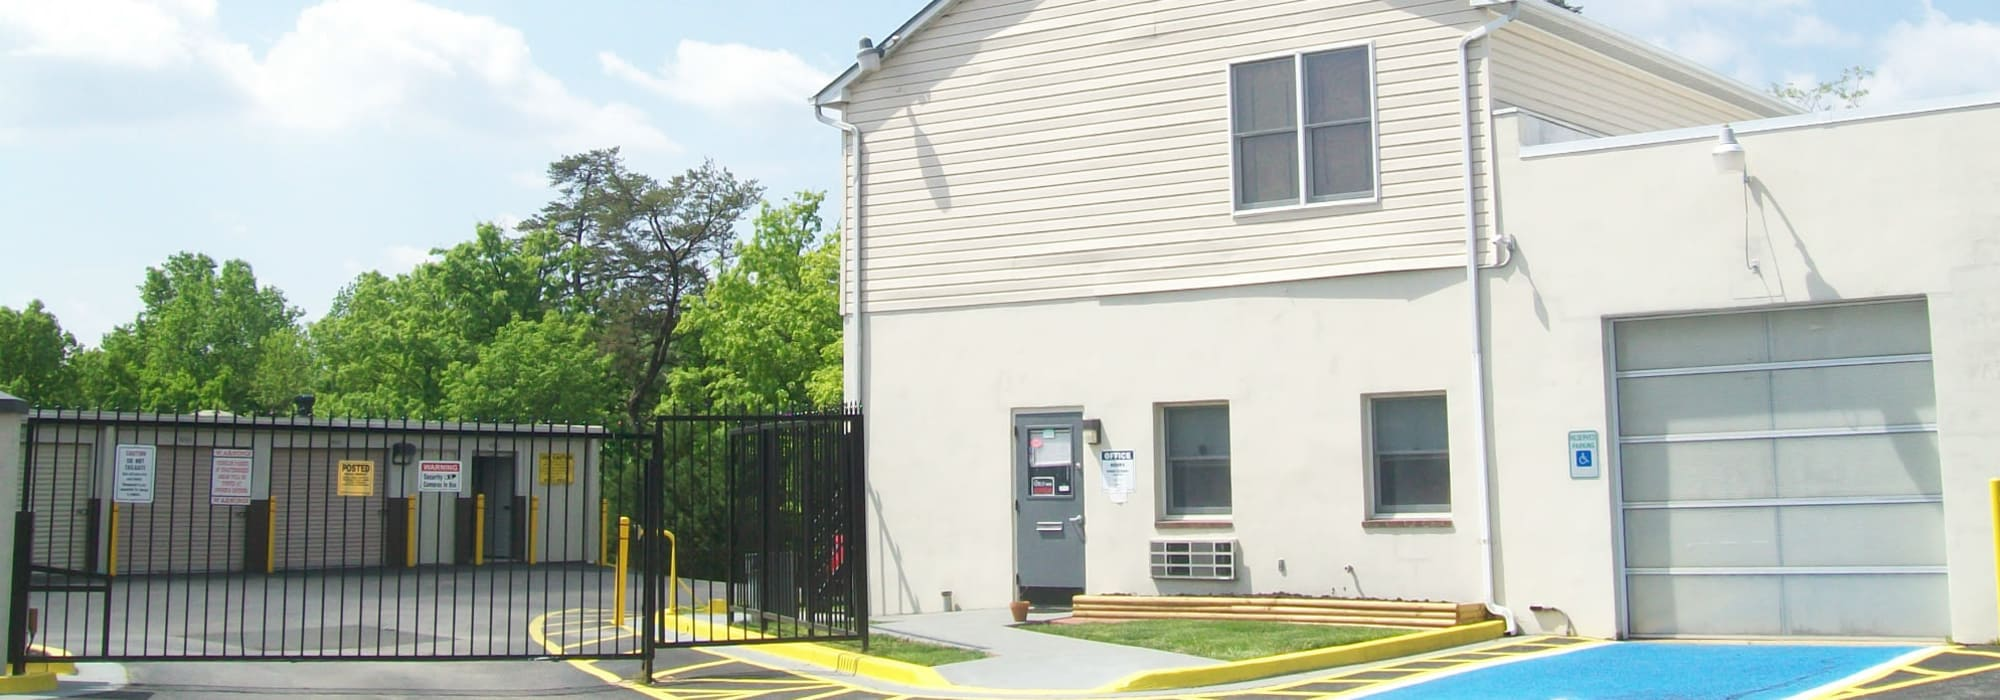 Self storage in Seabrook MD